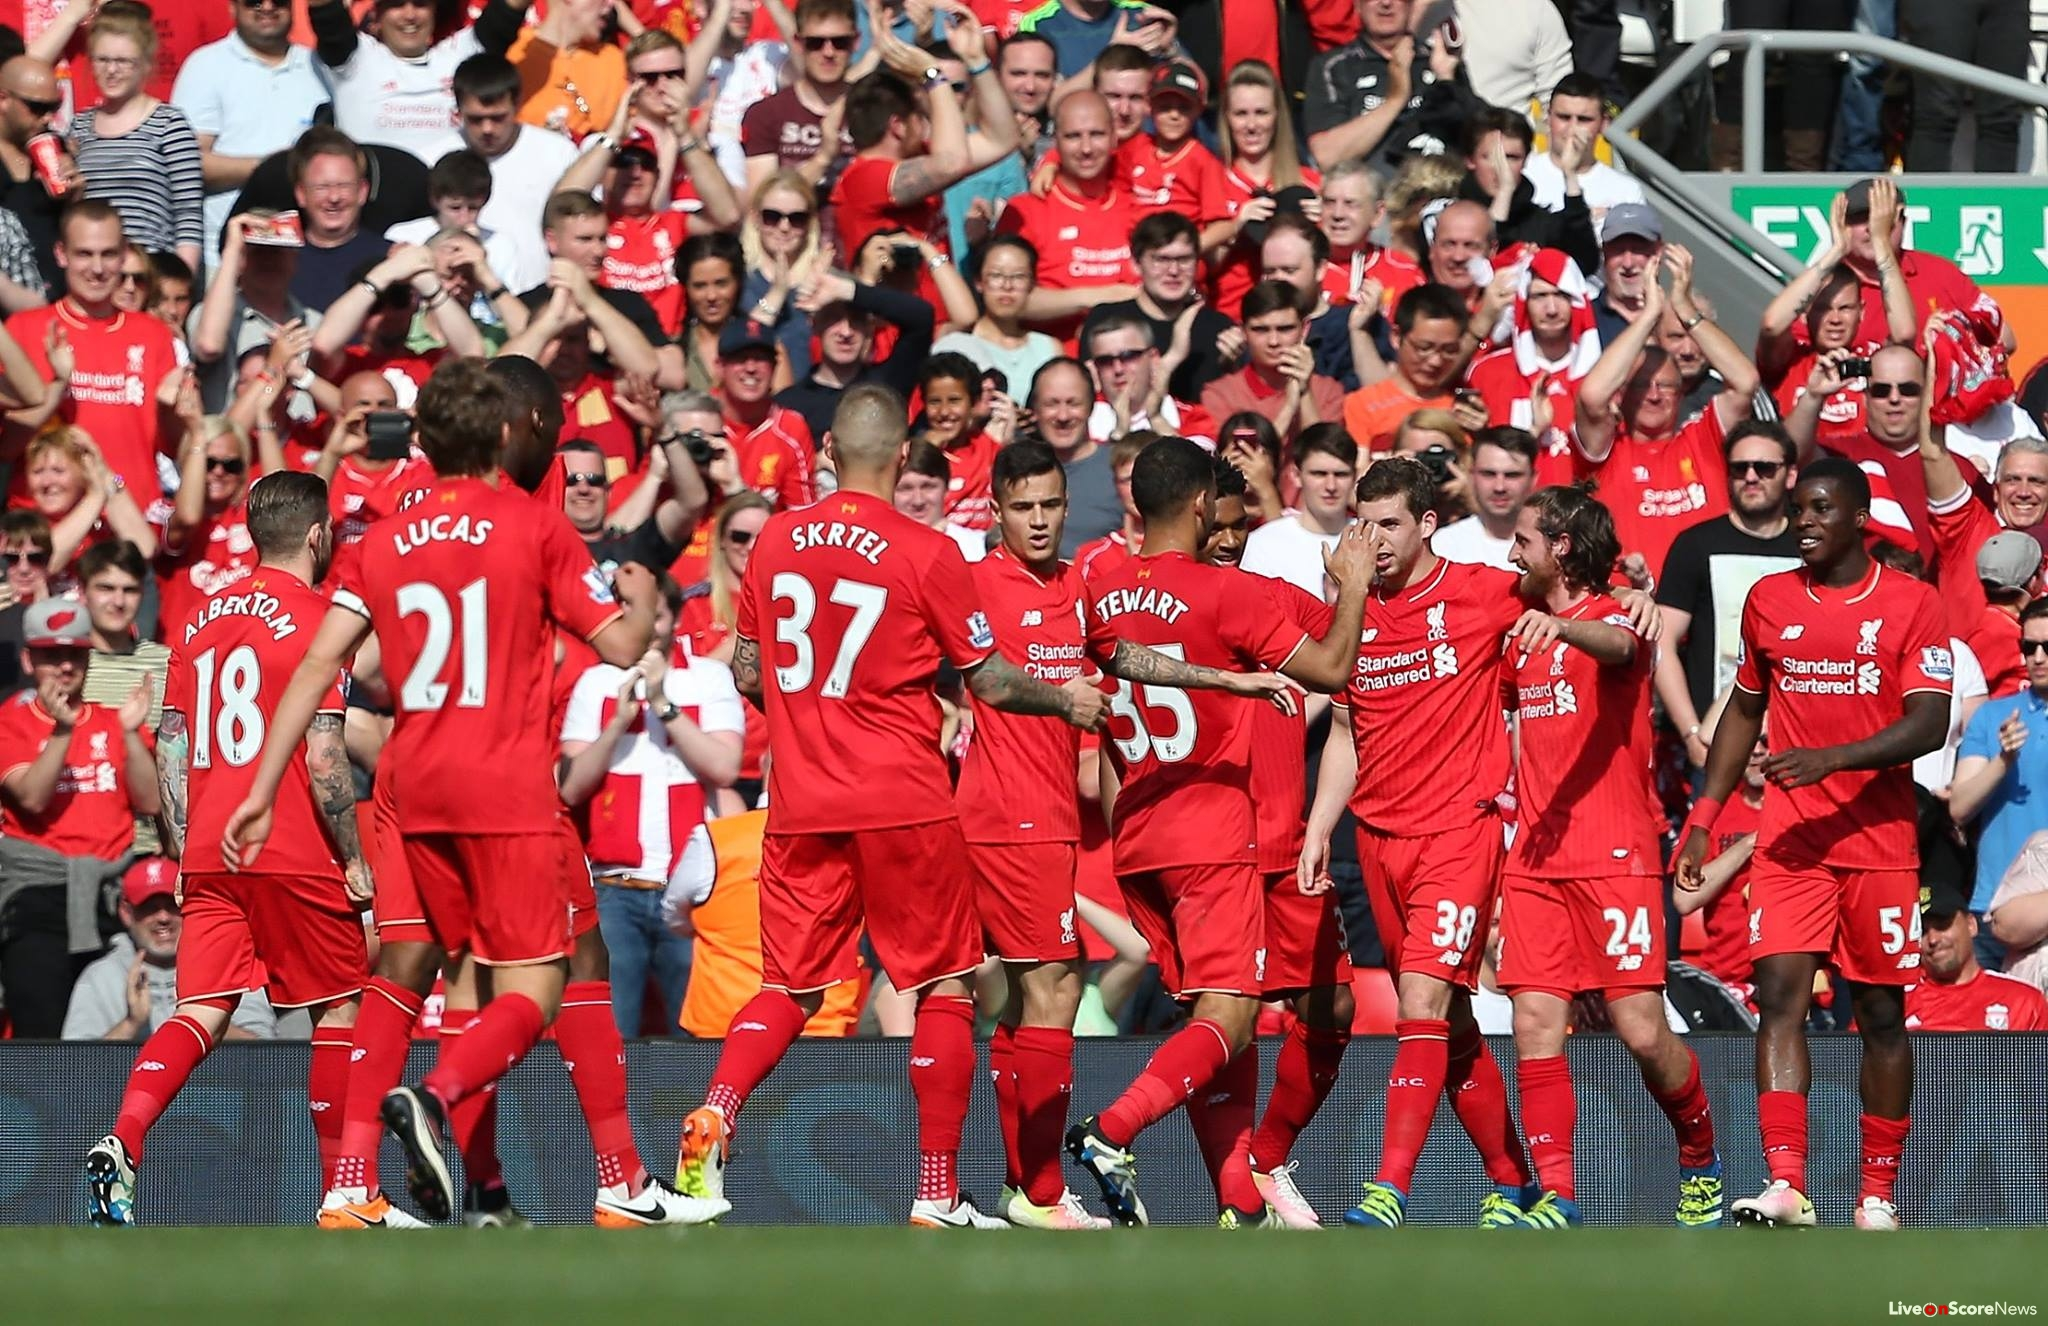 Liverpool's march on with comfortable win